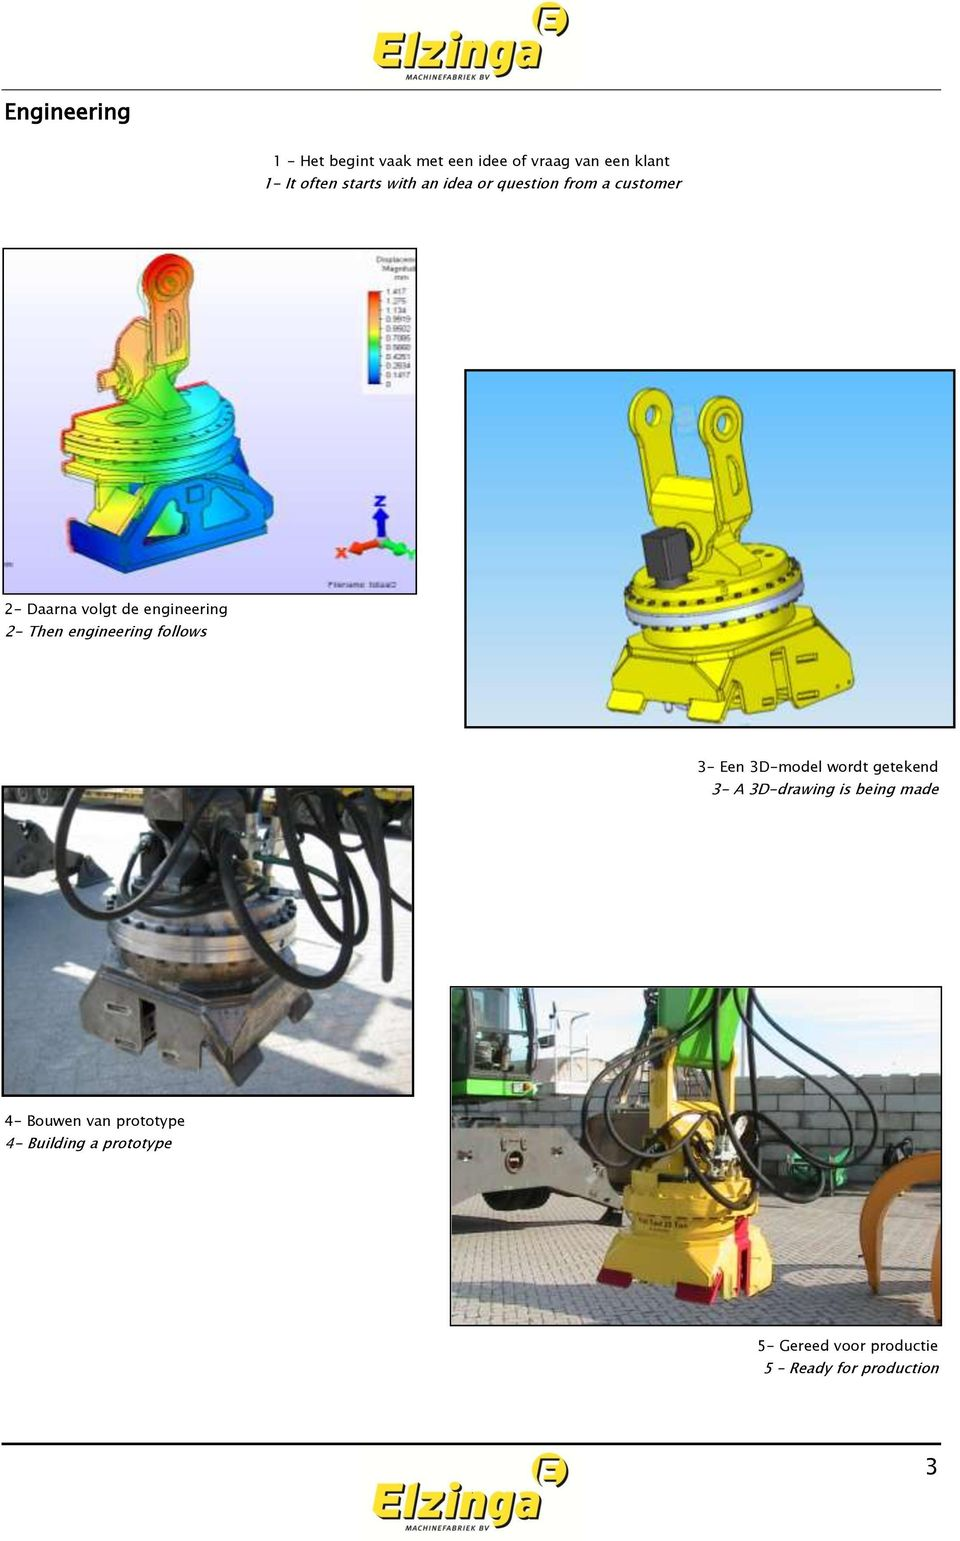 engineering follows 3- Een 3D-model wordt getekend 3- A 3D-drawing is being made 4-